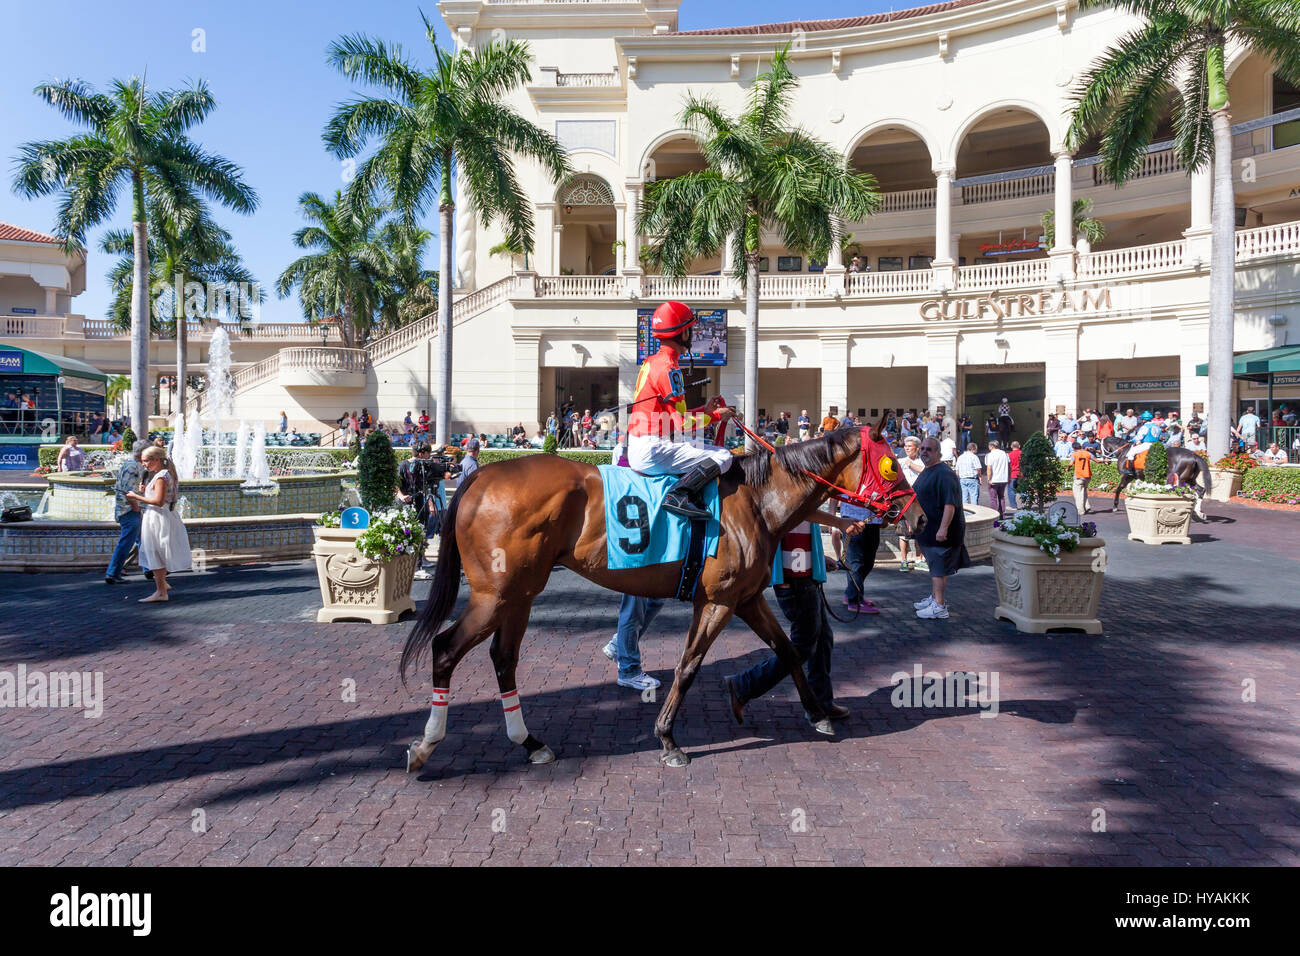 HALLANDALE BEACH, USA - MAR 11, 2017: Racing horses show at the Gulfstream Park race track in Hallandale Beach, - Stock Image